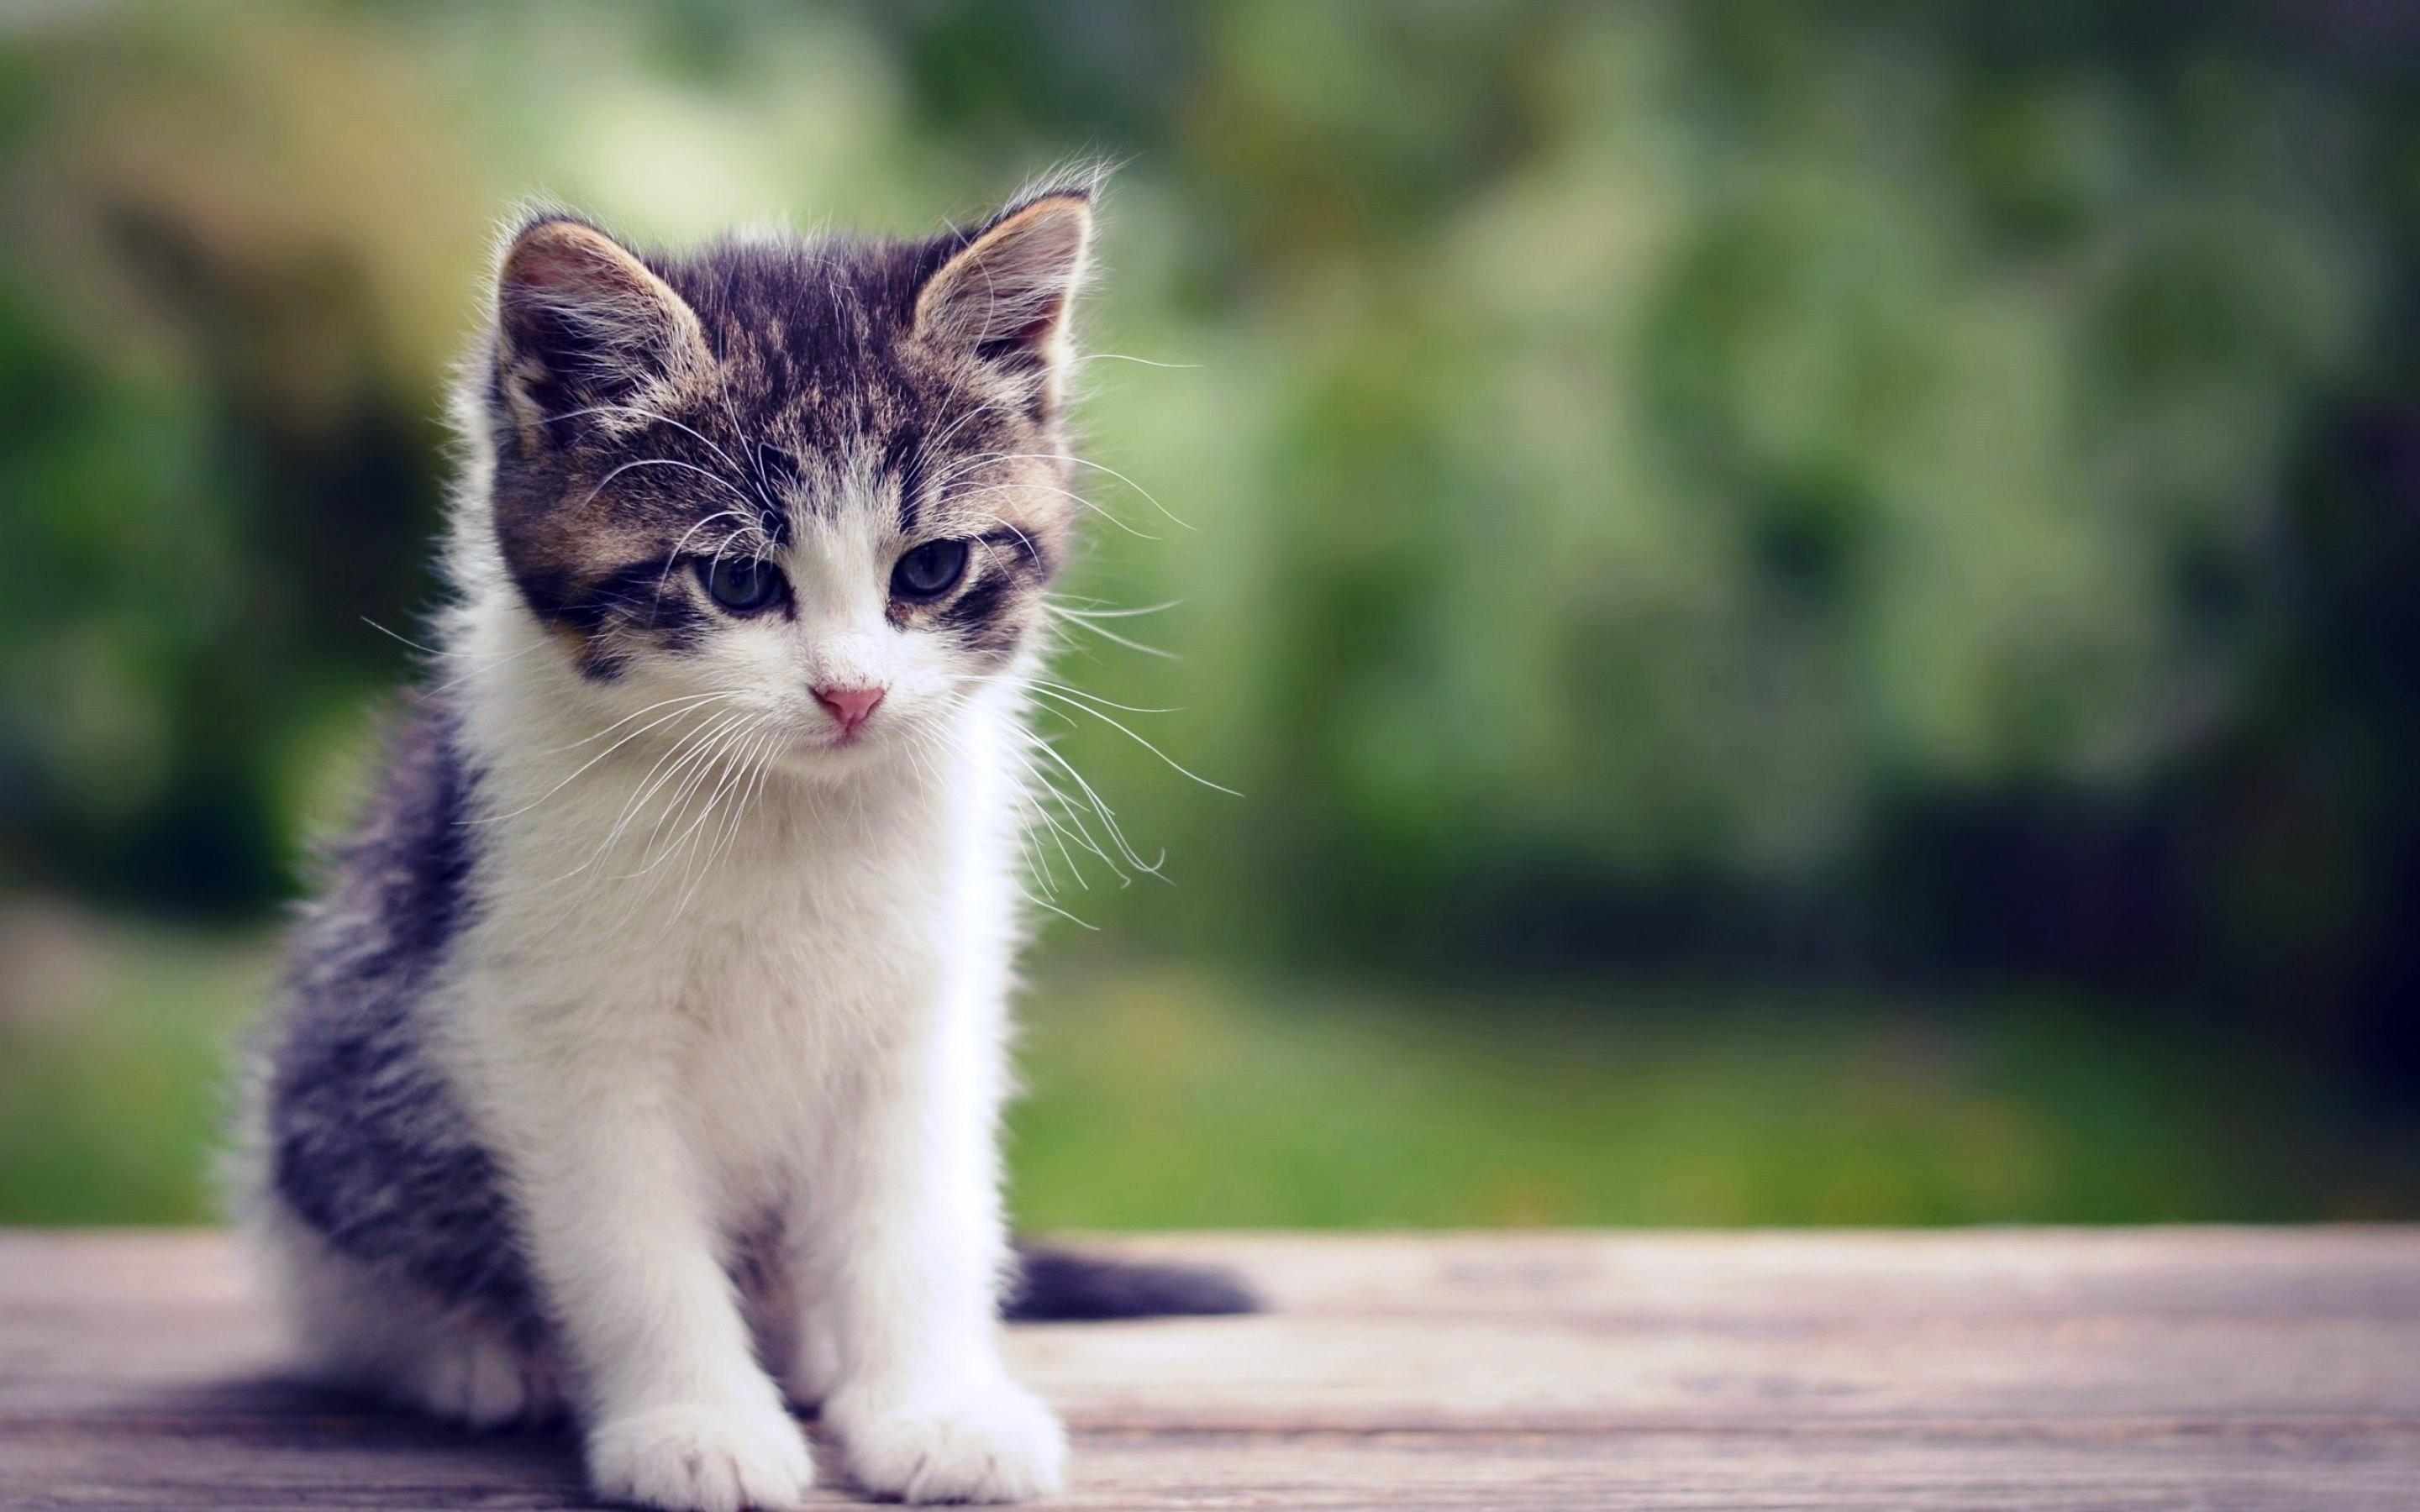 Baby cat wallpapers clipart image gallery for free download